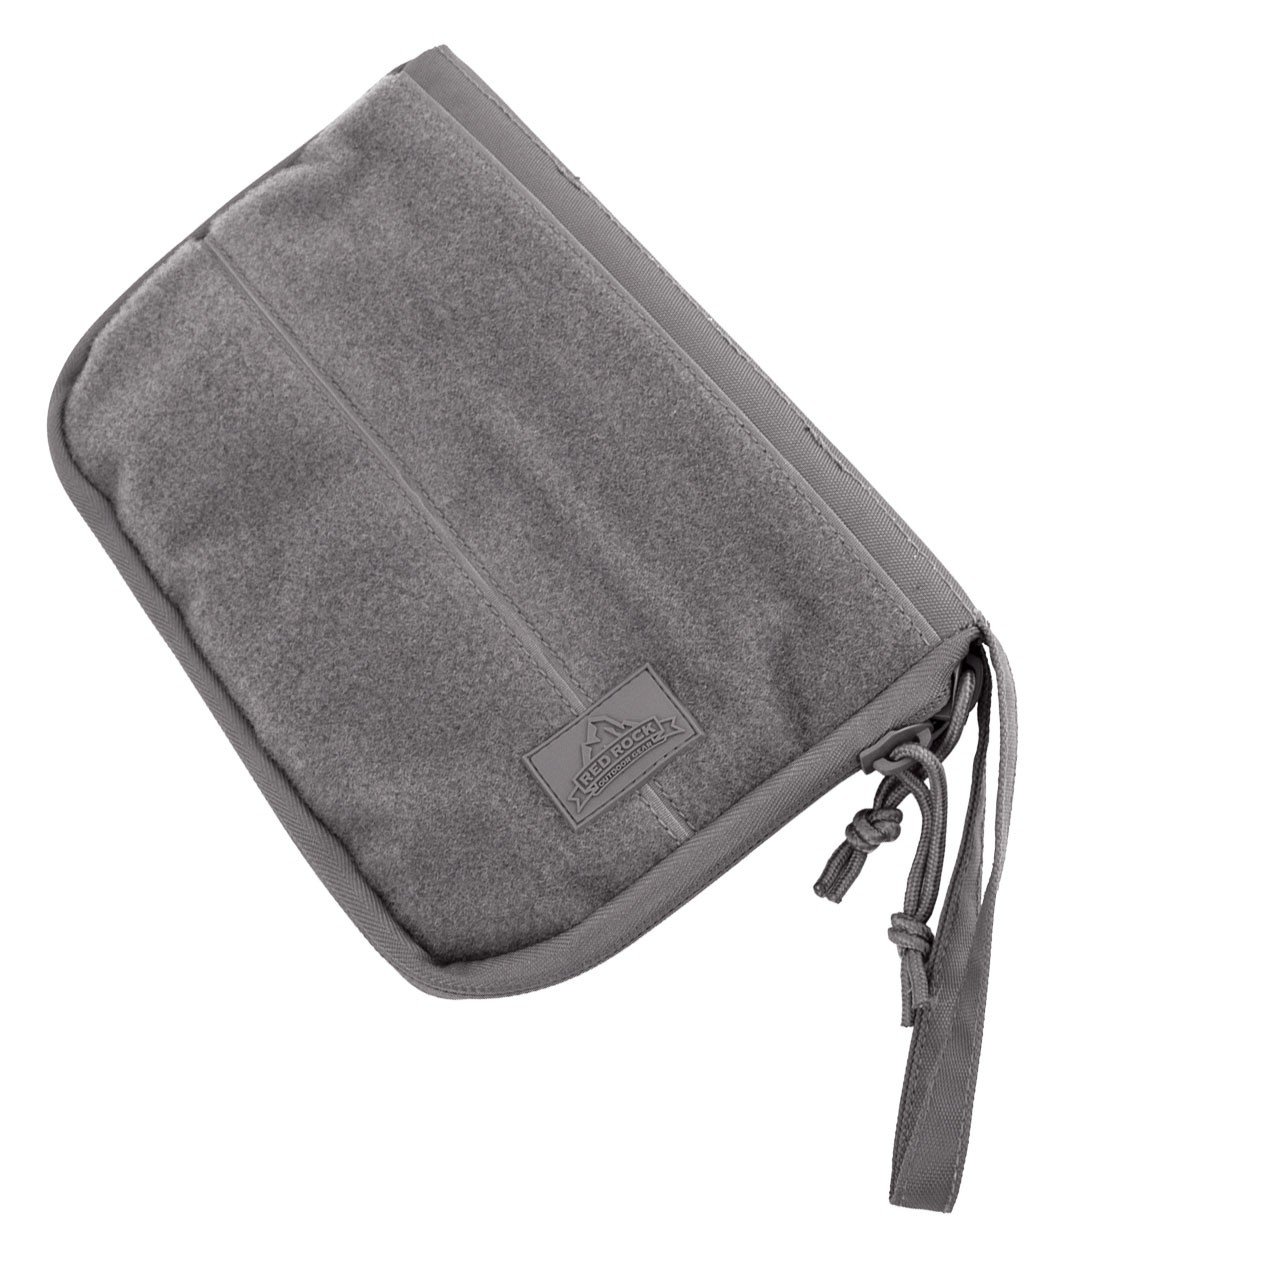 Red Rock Gear MOLLE Pistol Case